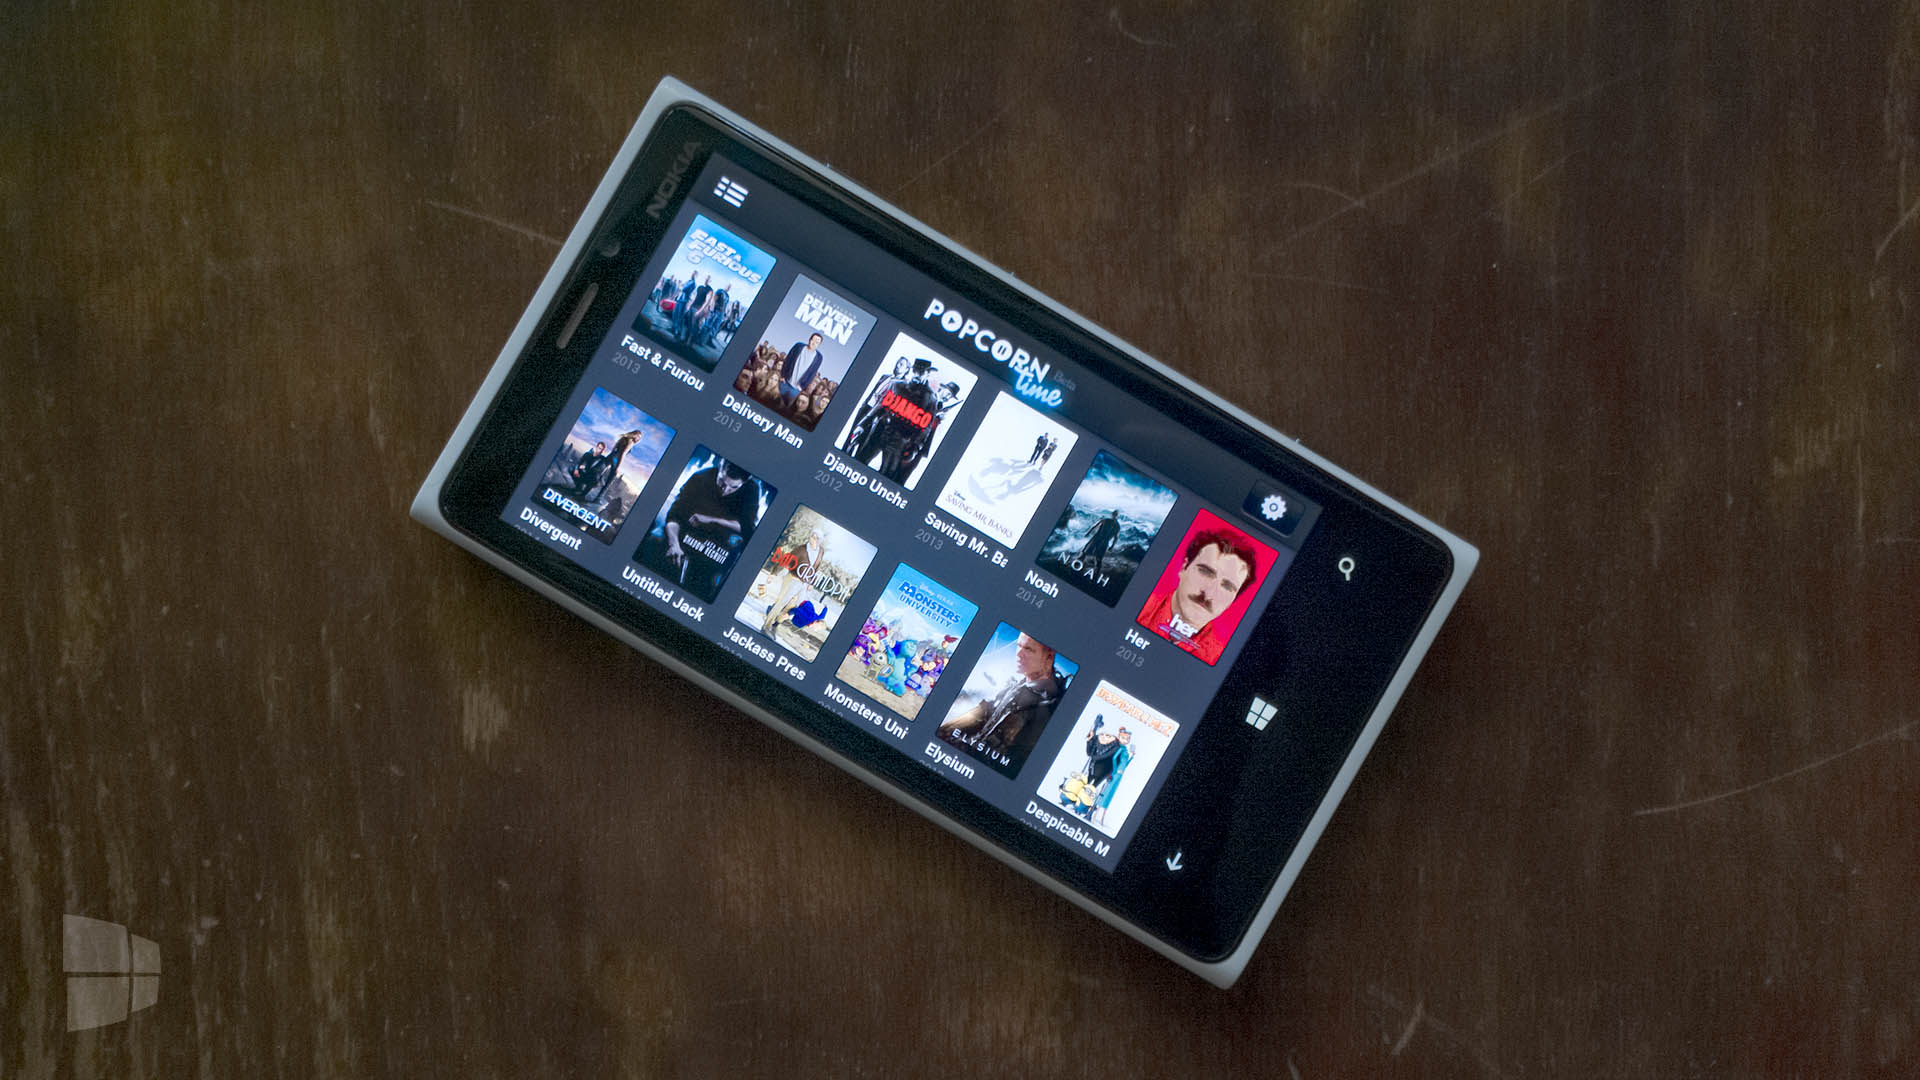 Popcorn Time Windows Phone